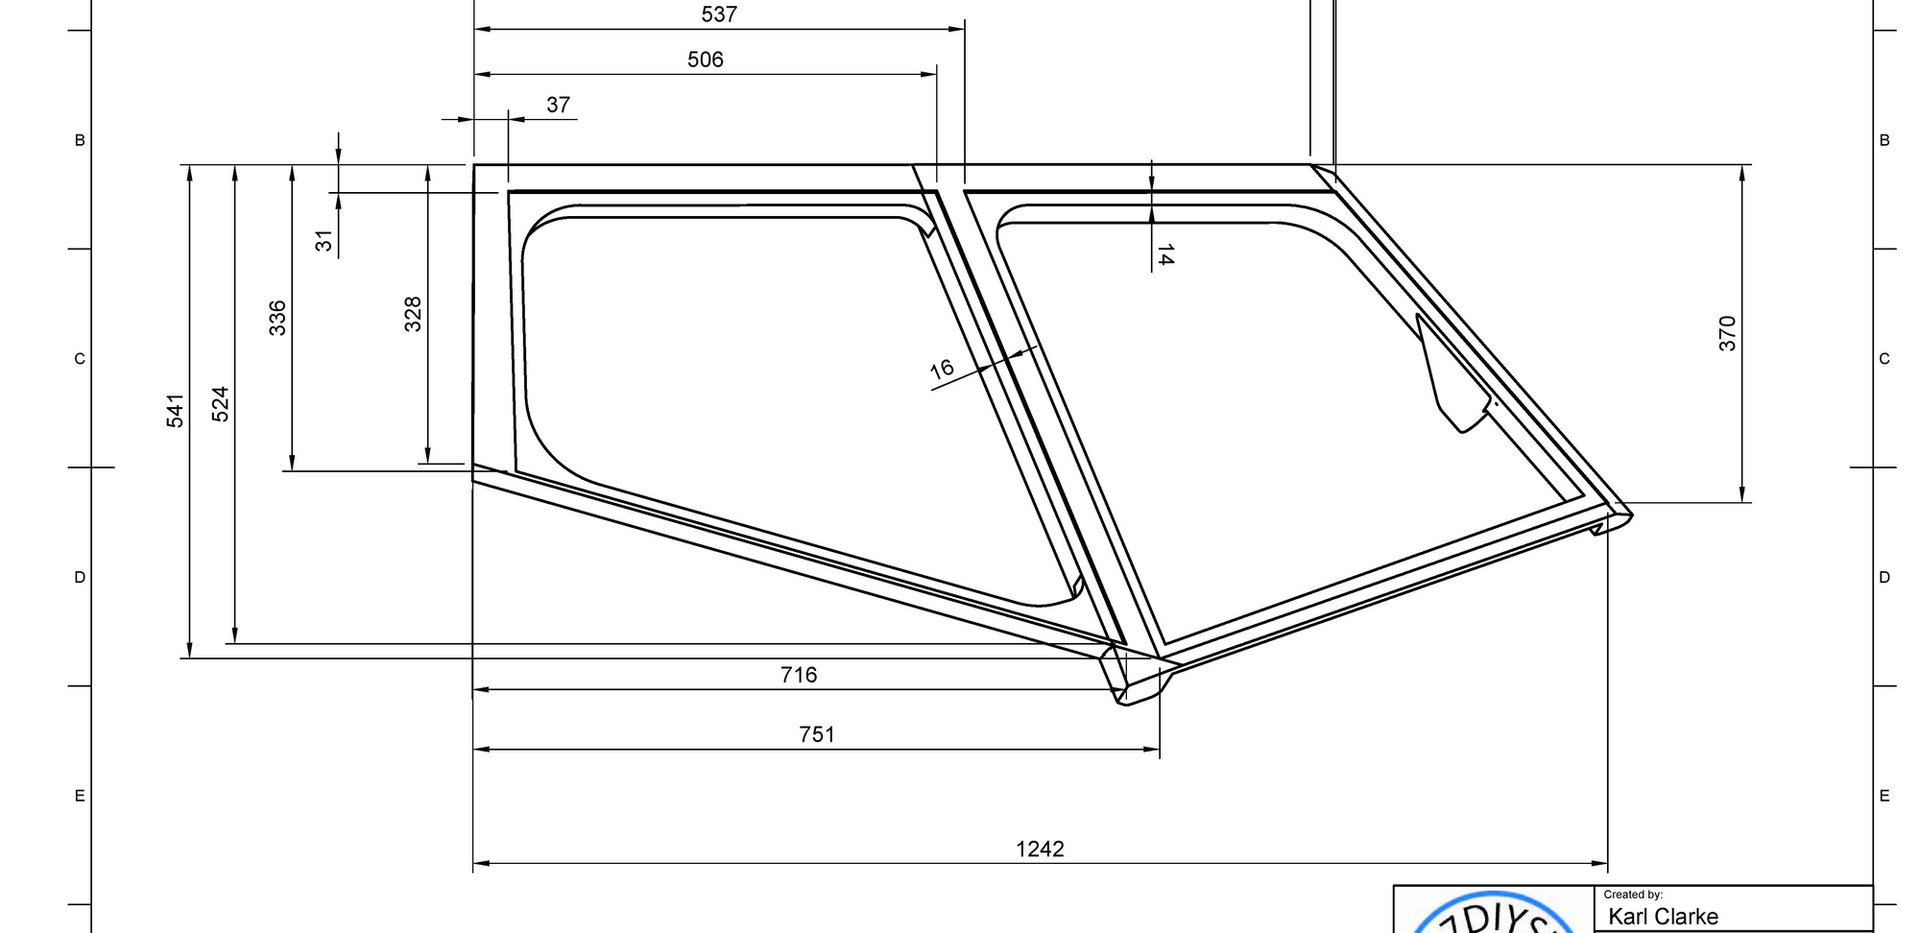 Cockpit Window Dimensions Drawing v1-pag